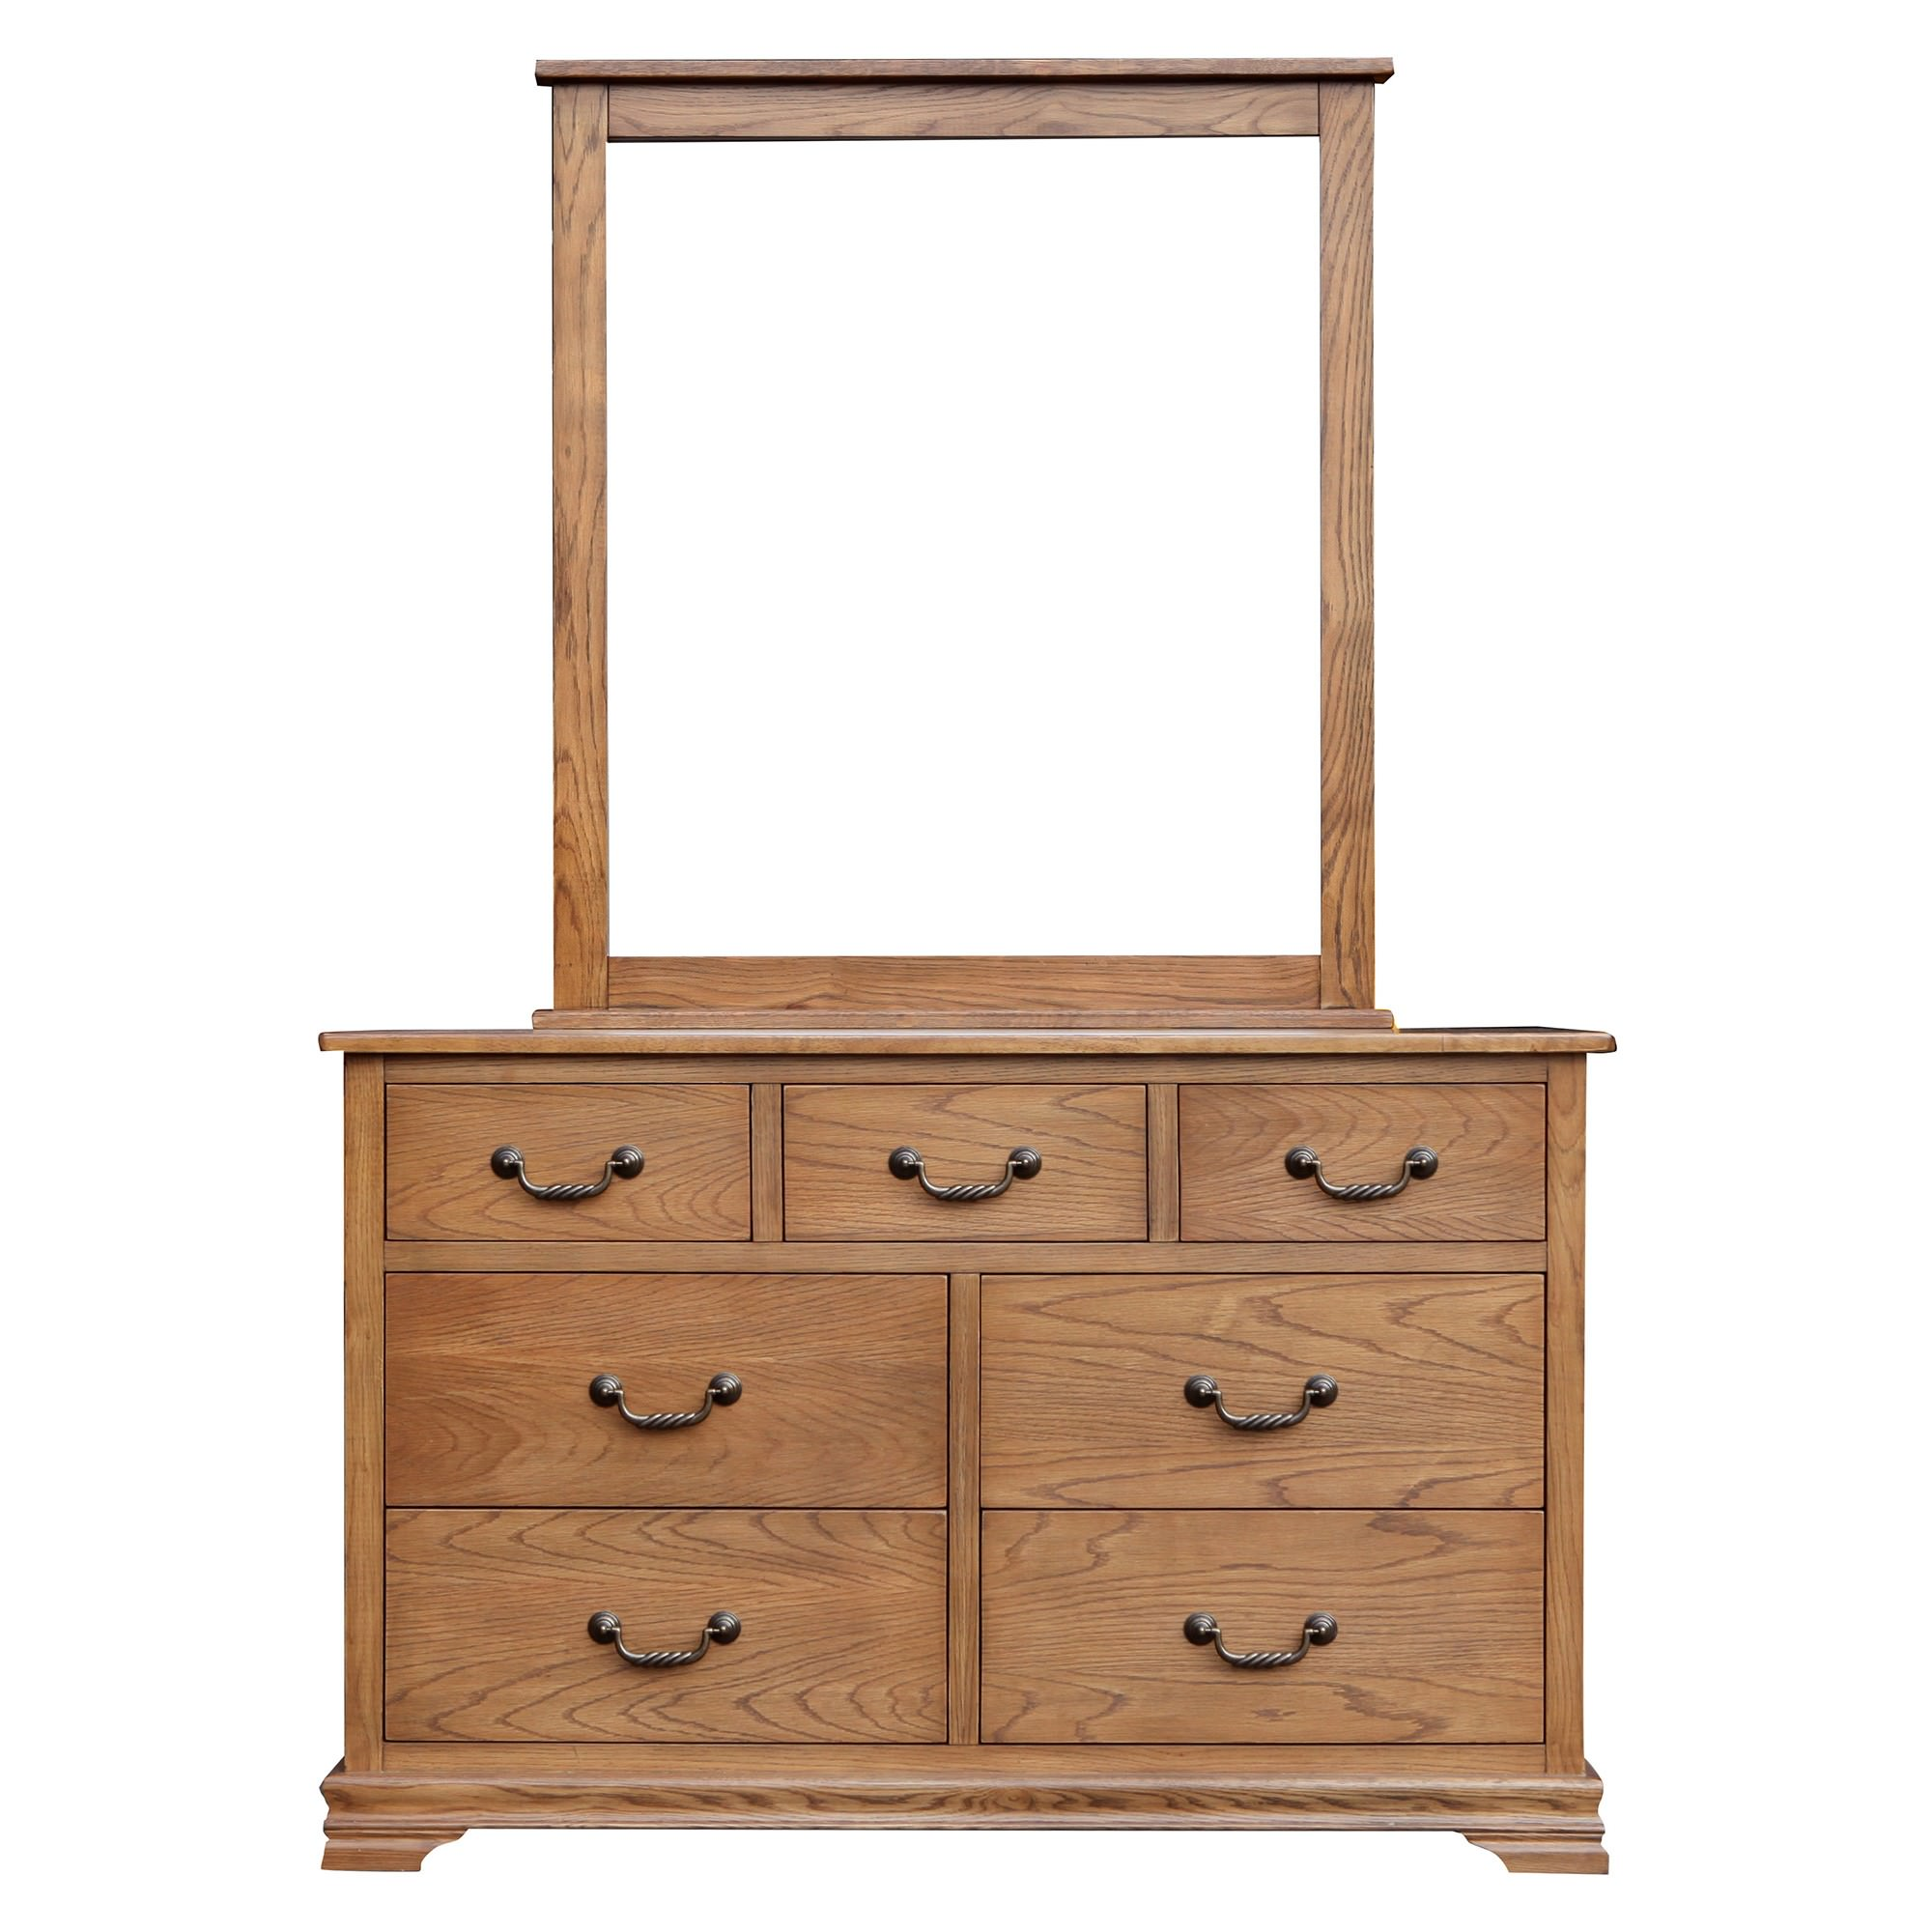 Malibu American Oak Timber 7 Drawer Dresser with Mirror